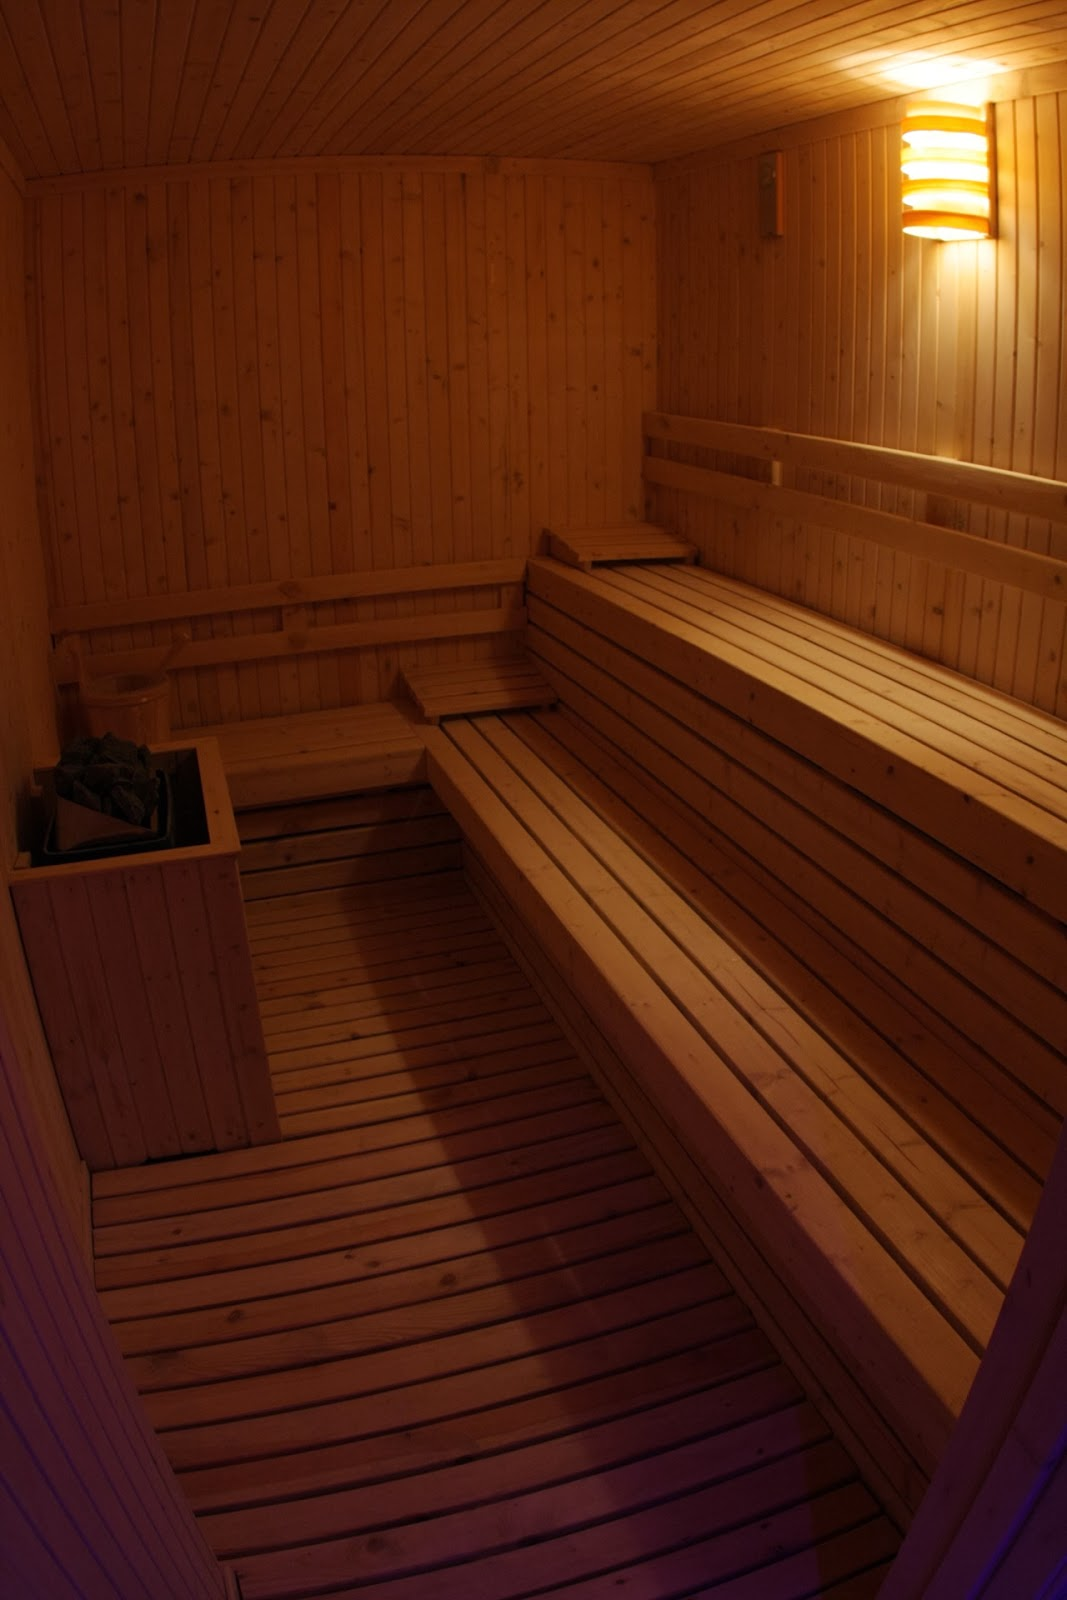 a sauna boys at Gay